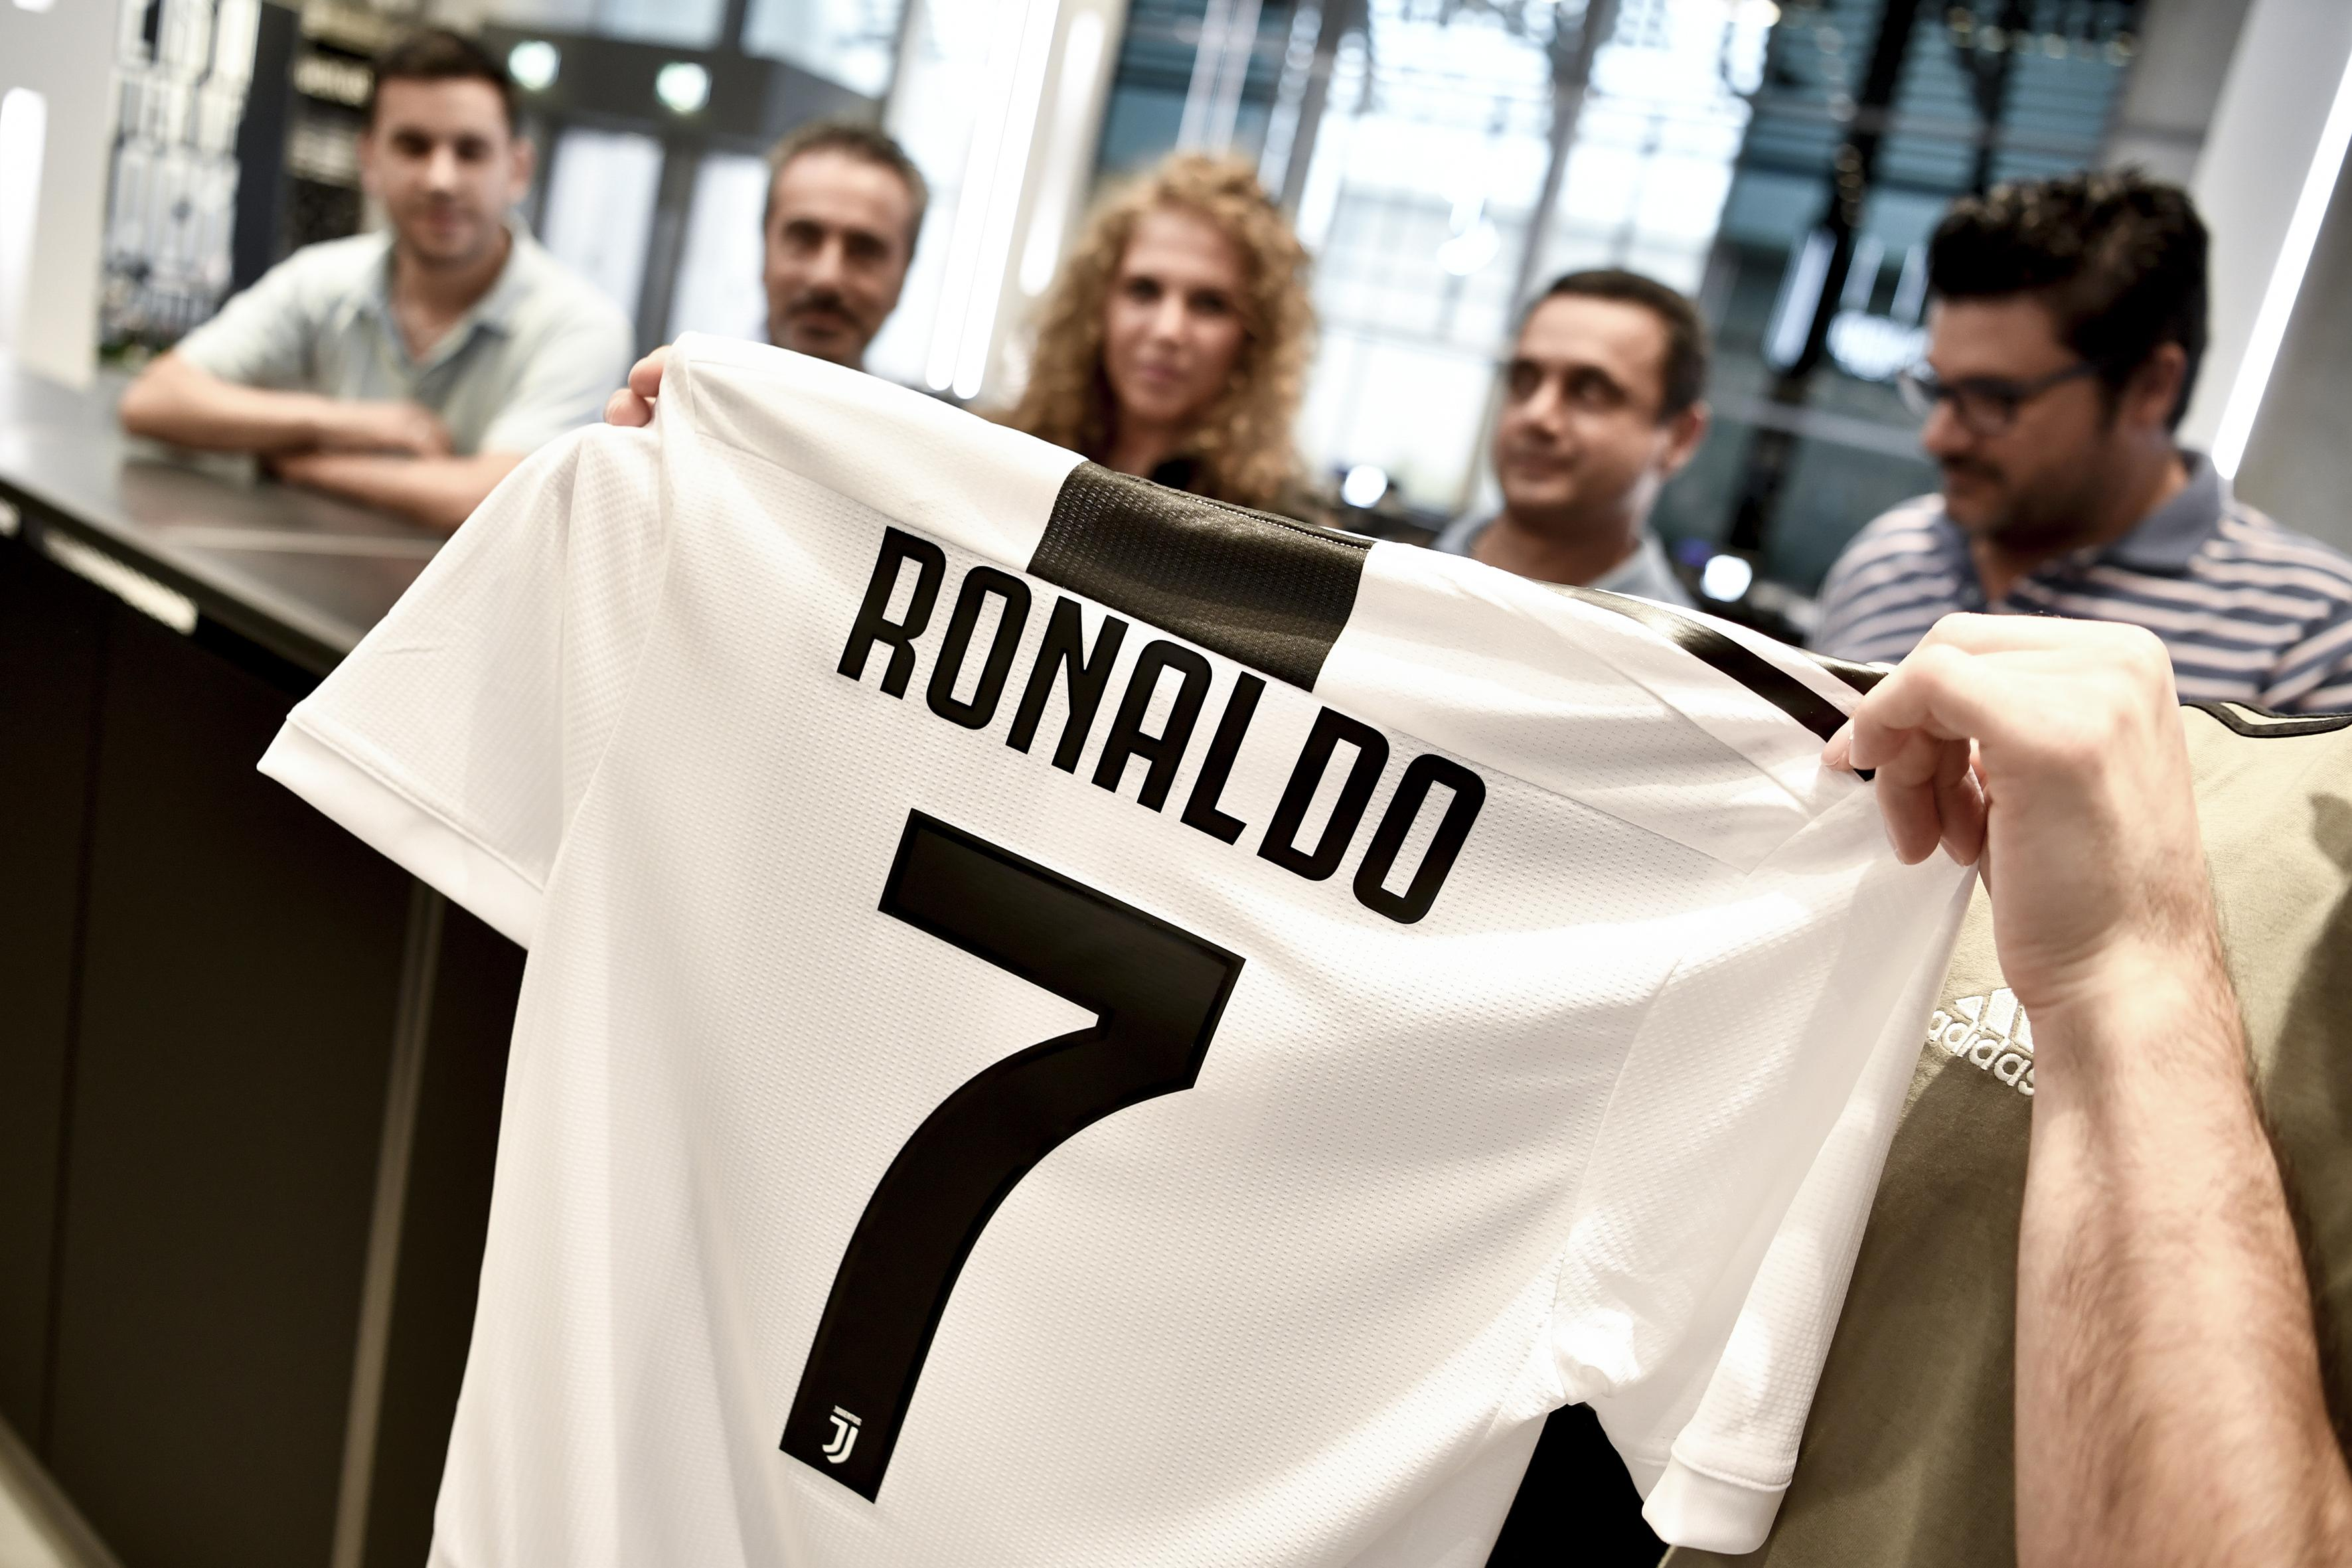 CR7 shirts are now flying off the racks in Turin